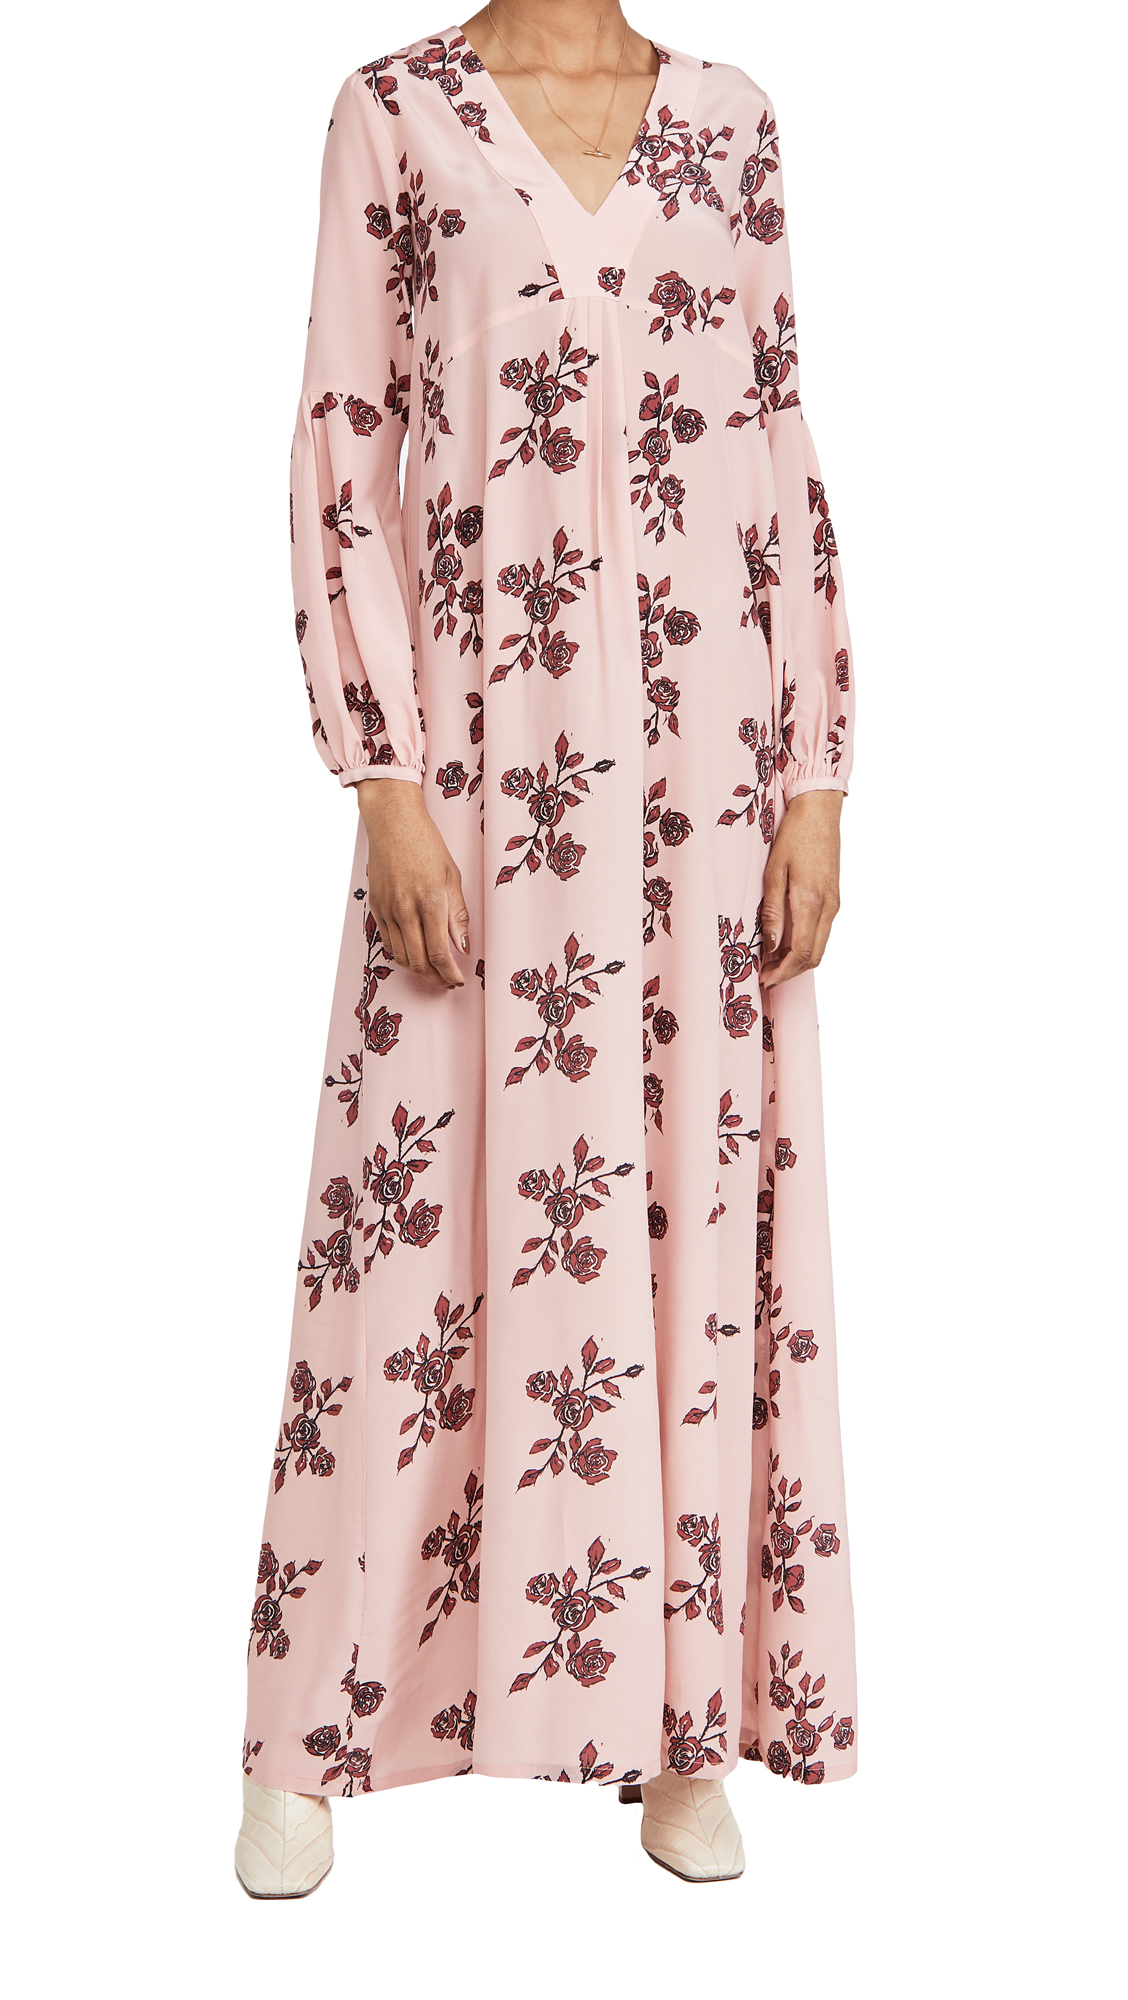 macgraw Bouquet Dress in Pink